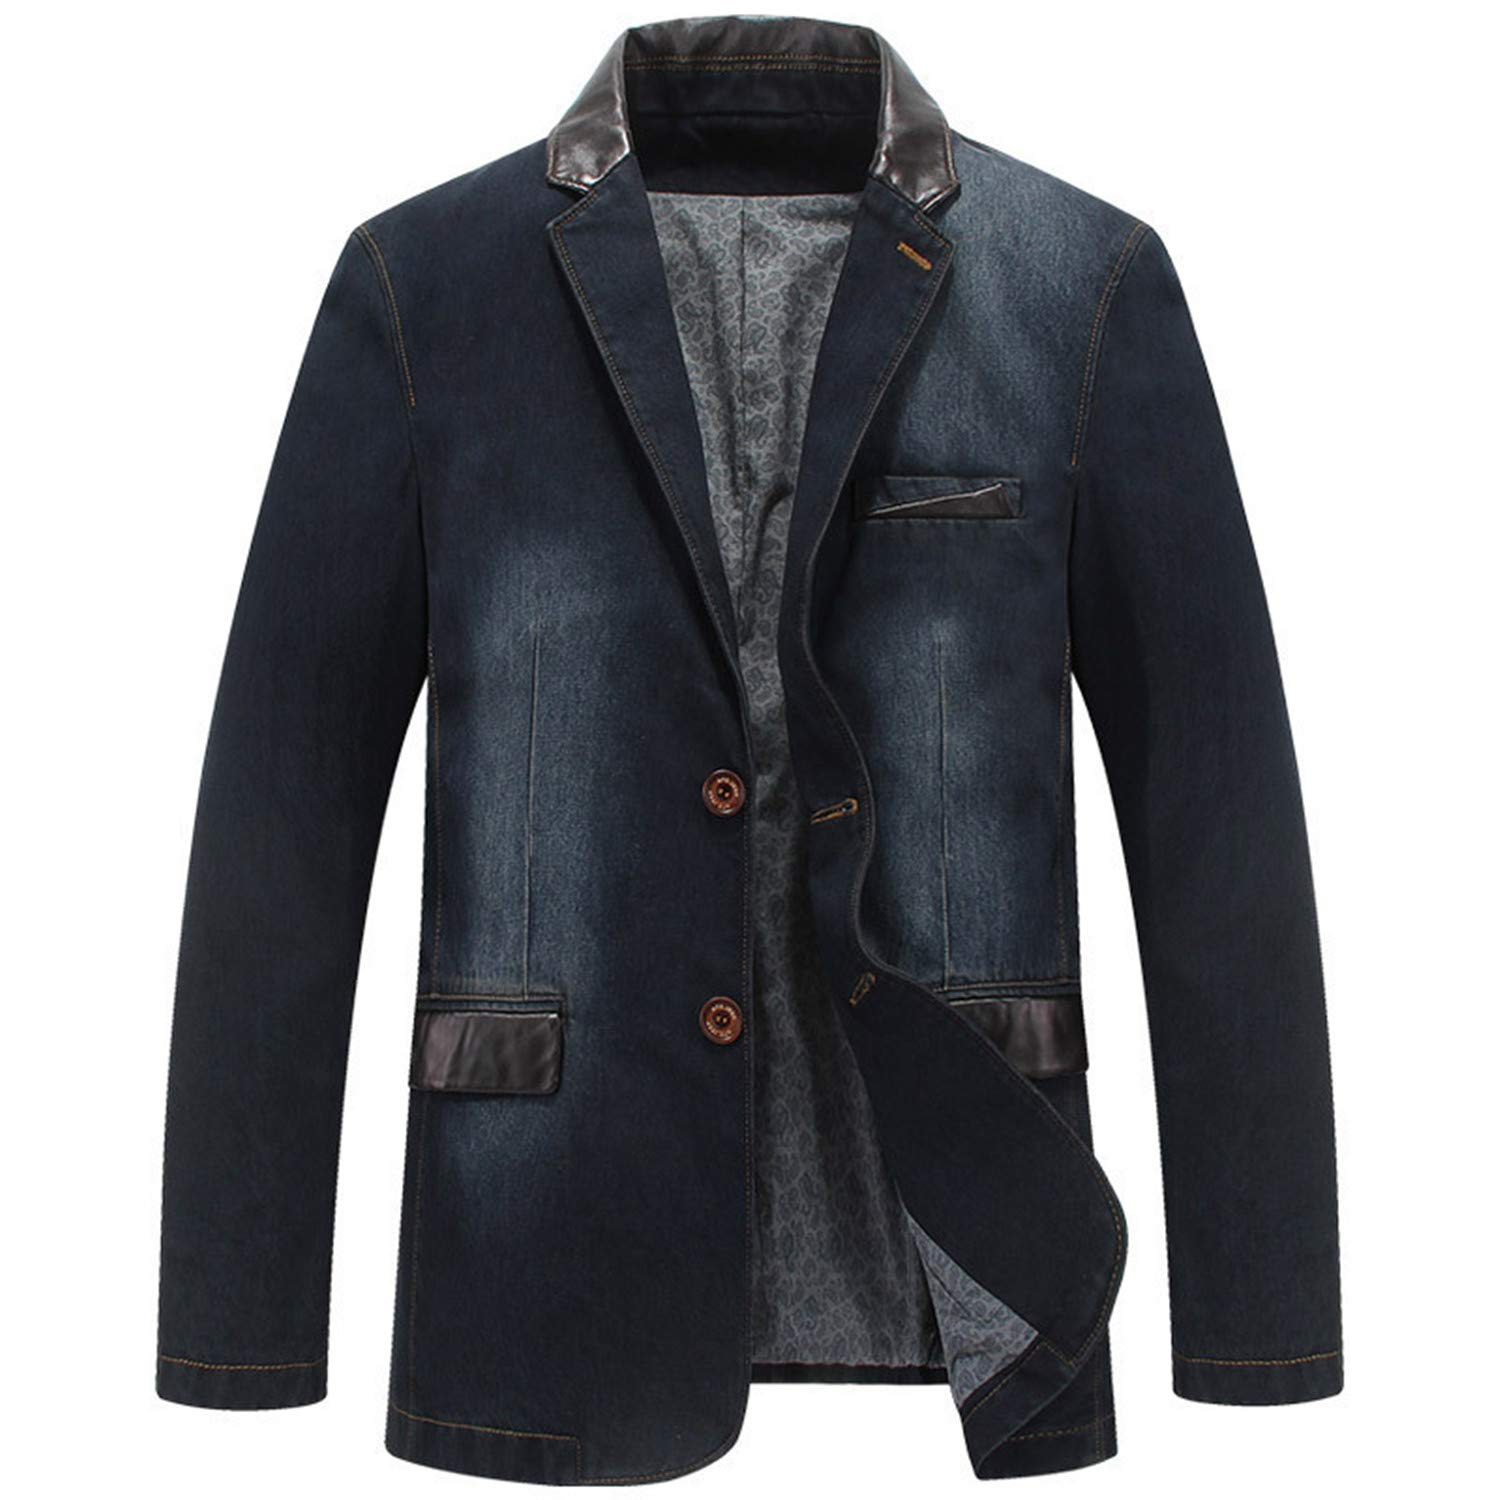 7de1f5e2cb86 Men Denim Suit Jacket Cotton Single Breasted Pockets Outwear Man Cowboy  Blazer at Amazon Men's Clothing store: